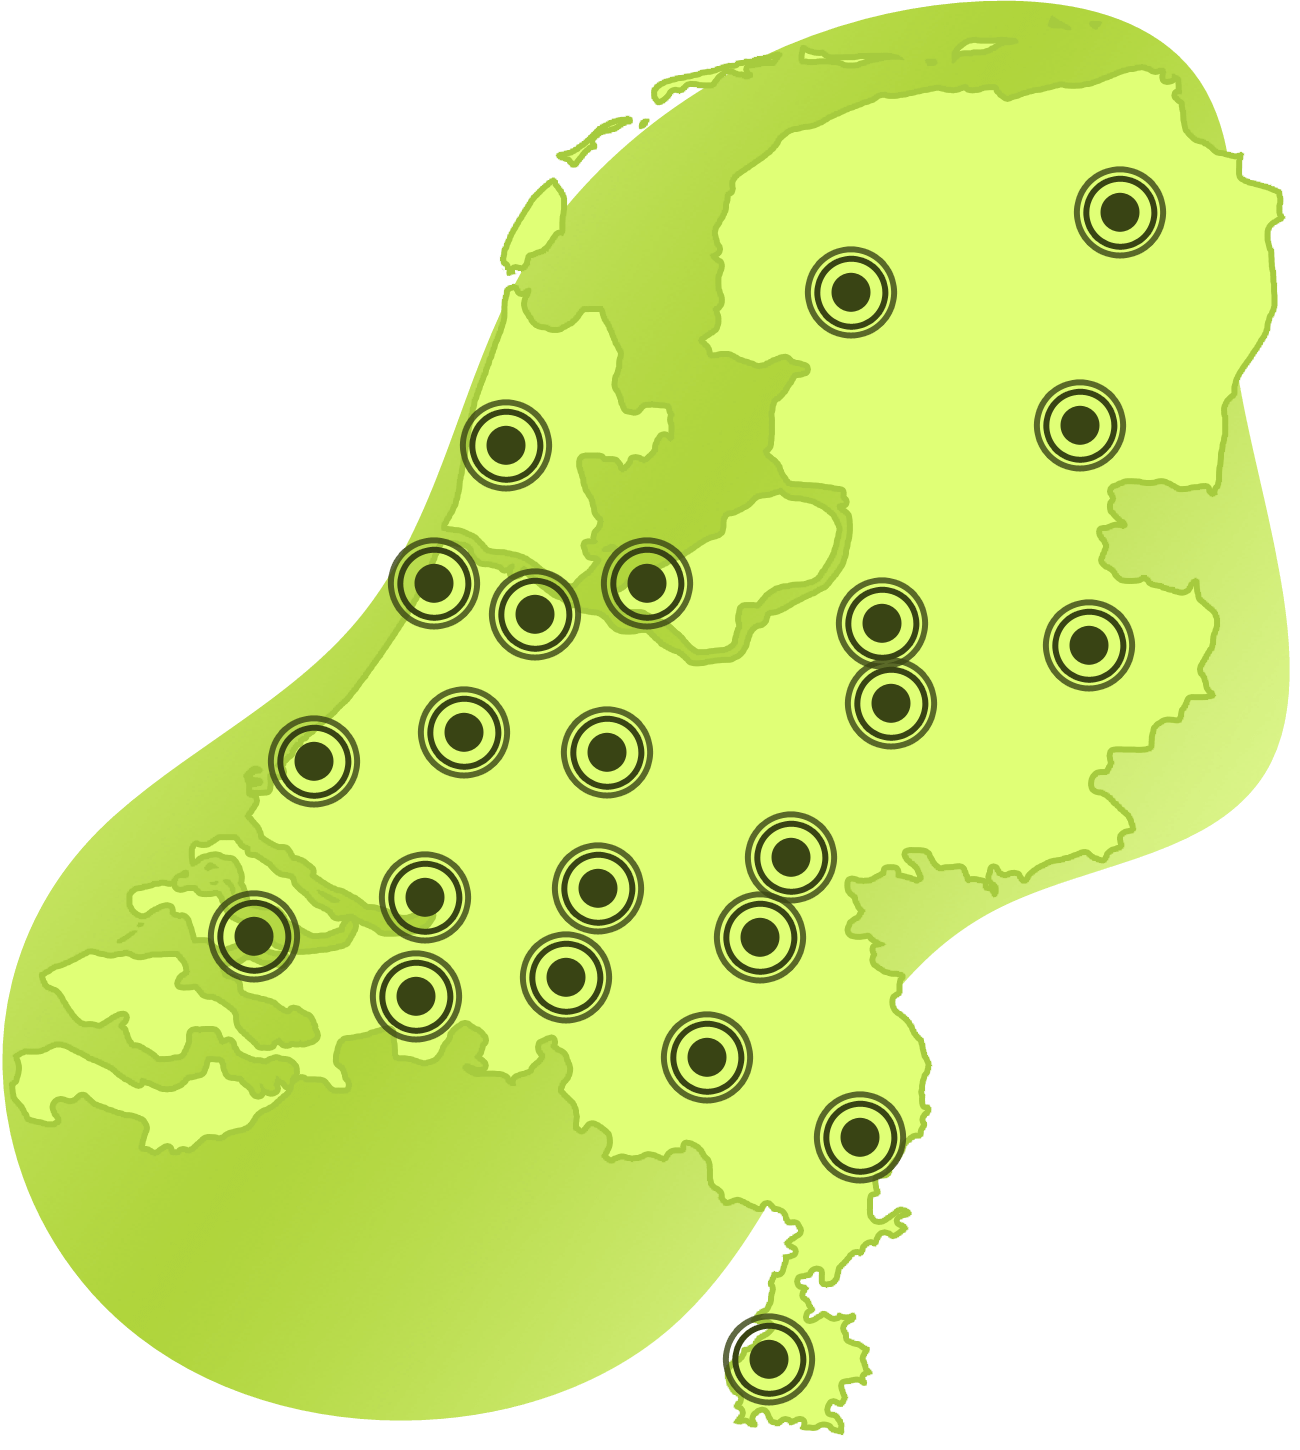 Map-Netherlands-rickidwebdesign_workarea